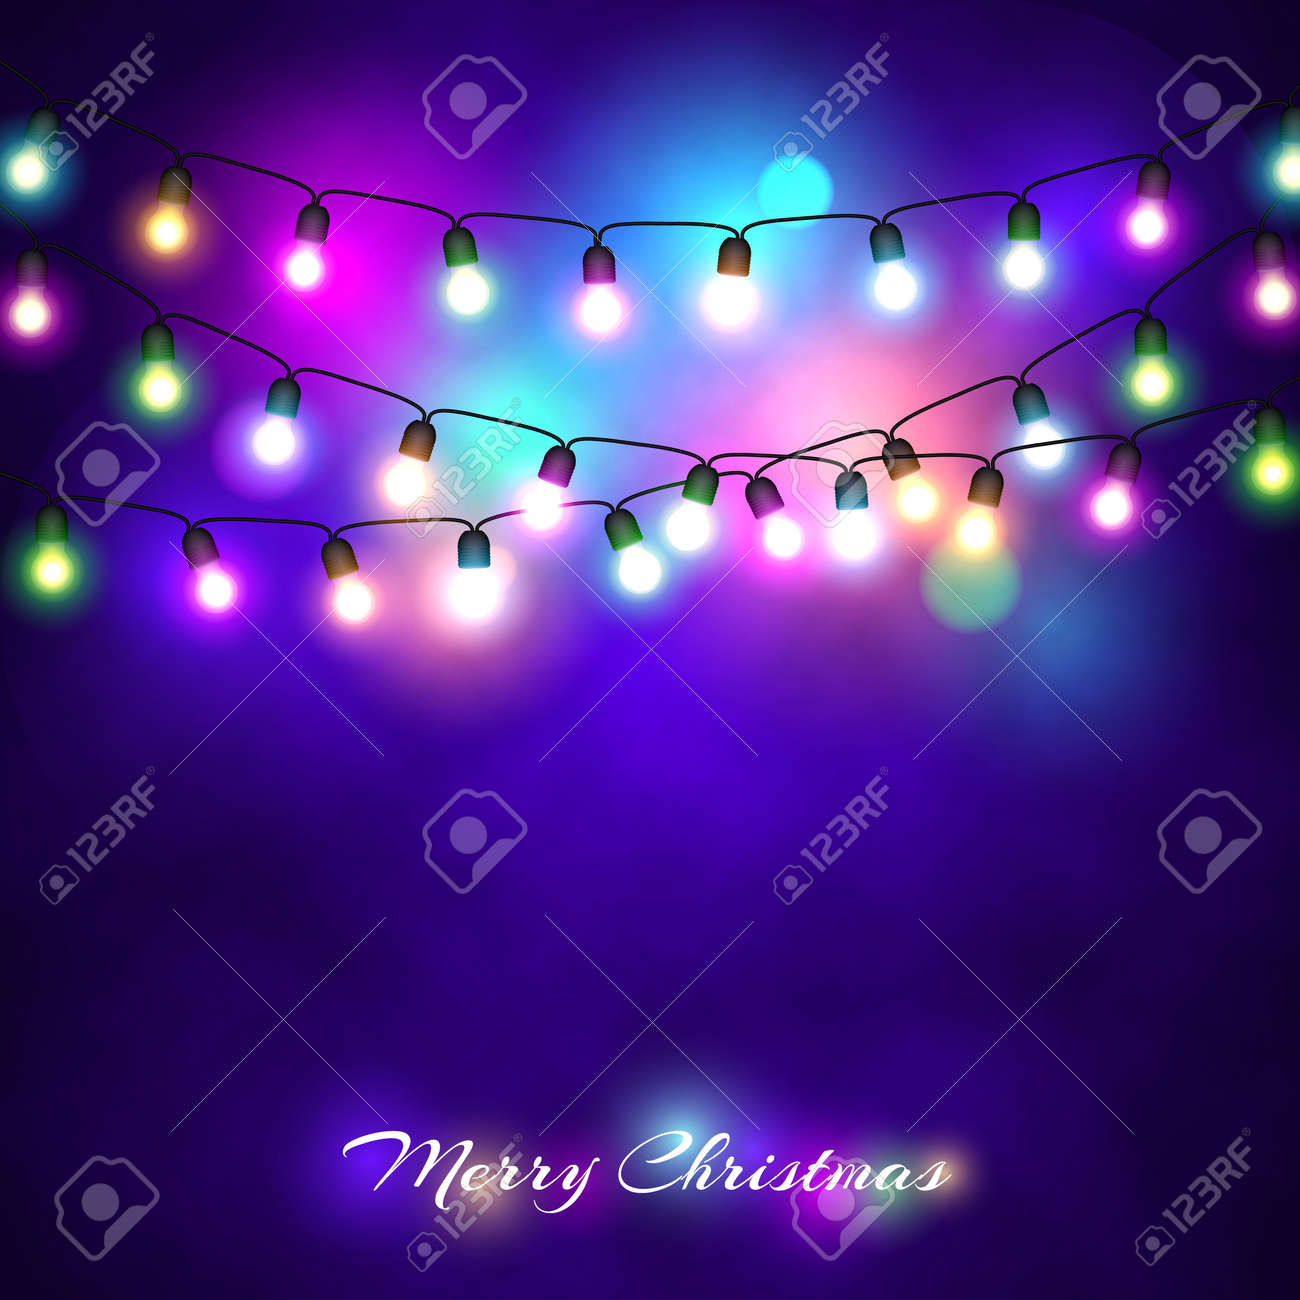 Christmas Lights Festive Decorations Glowing New Year S Neon